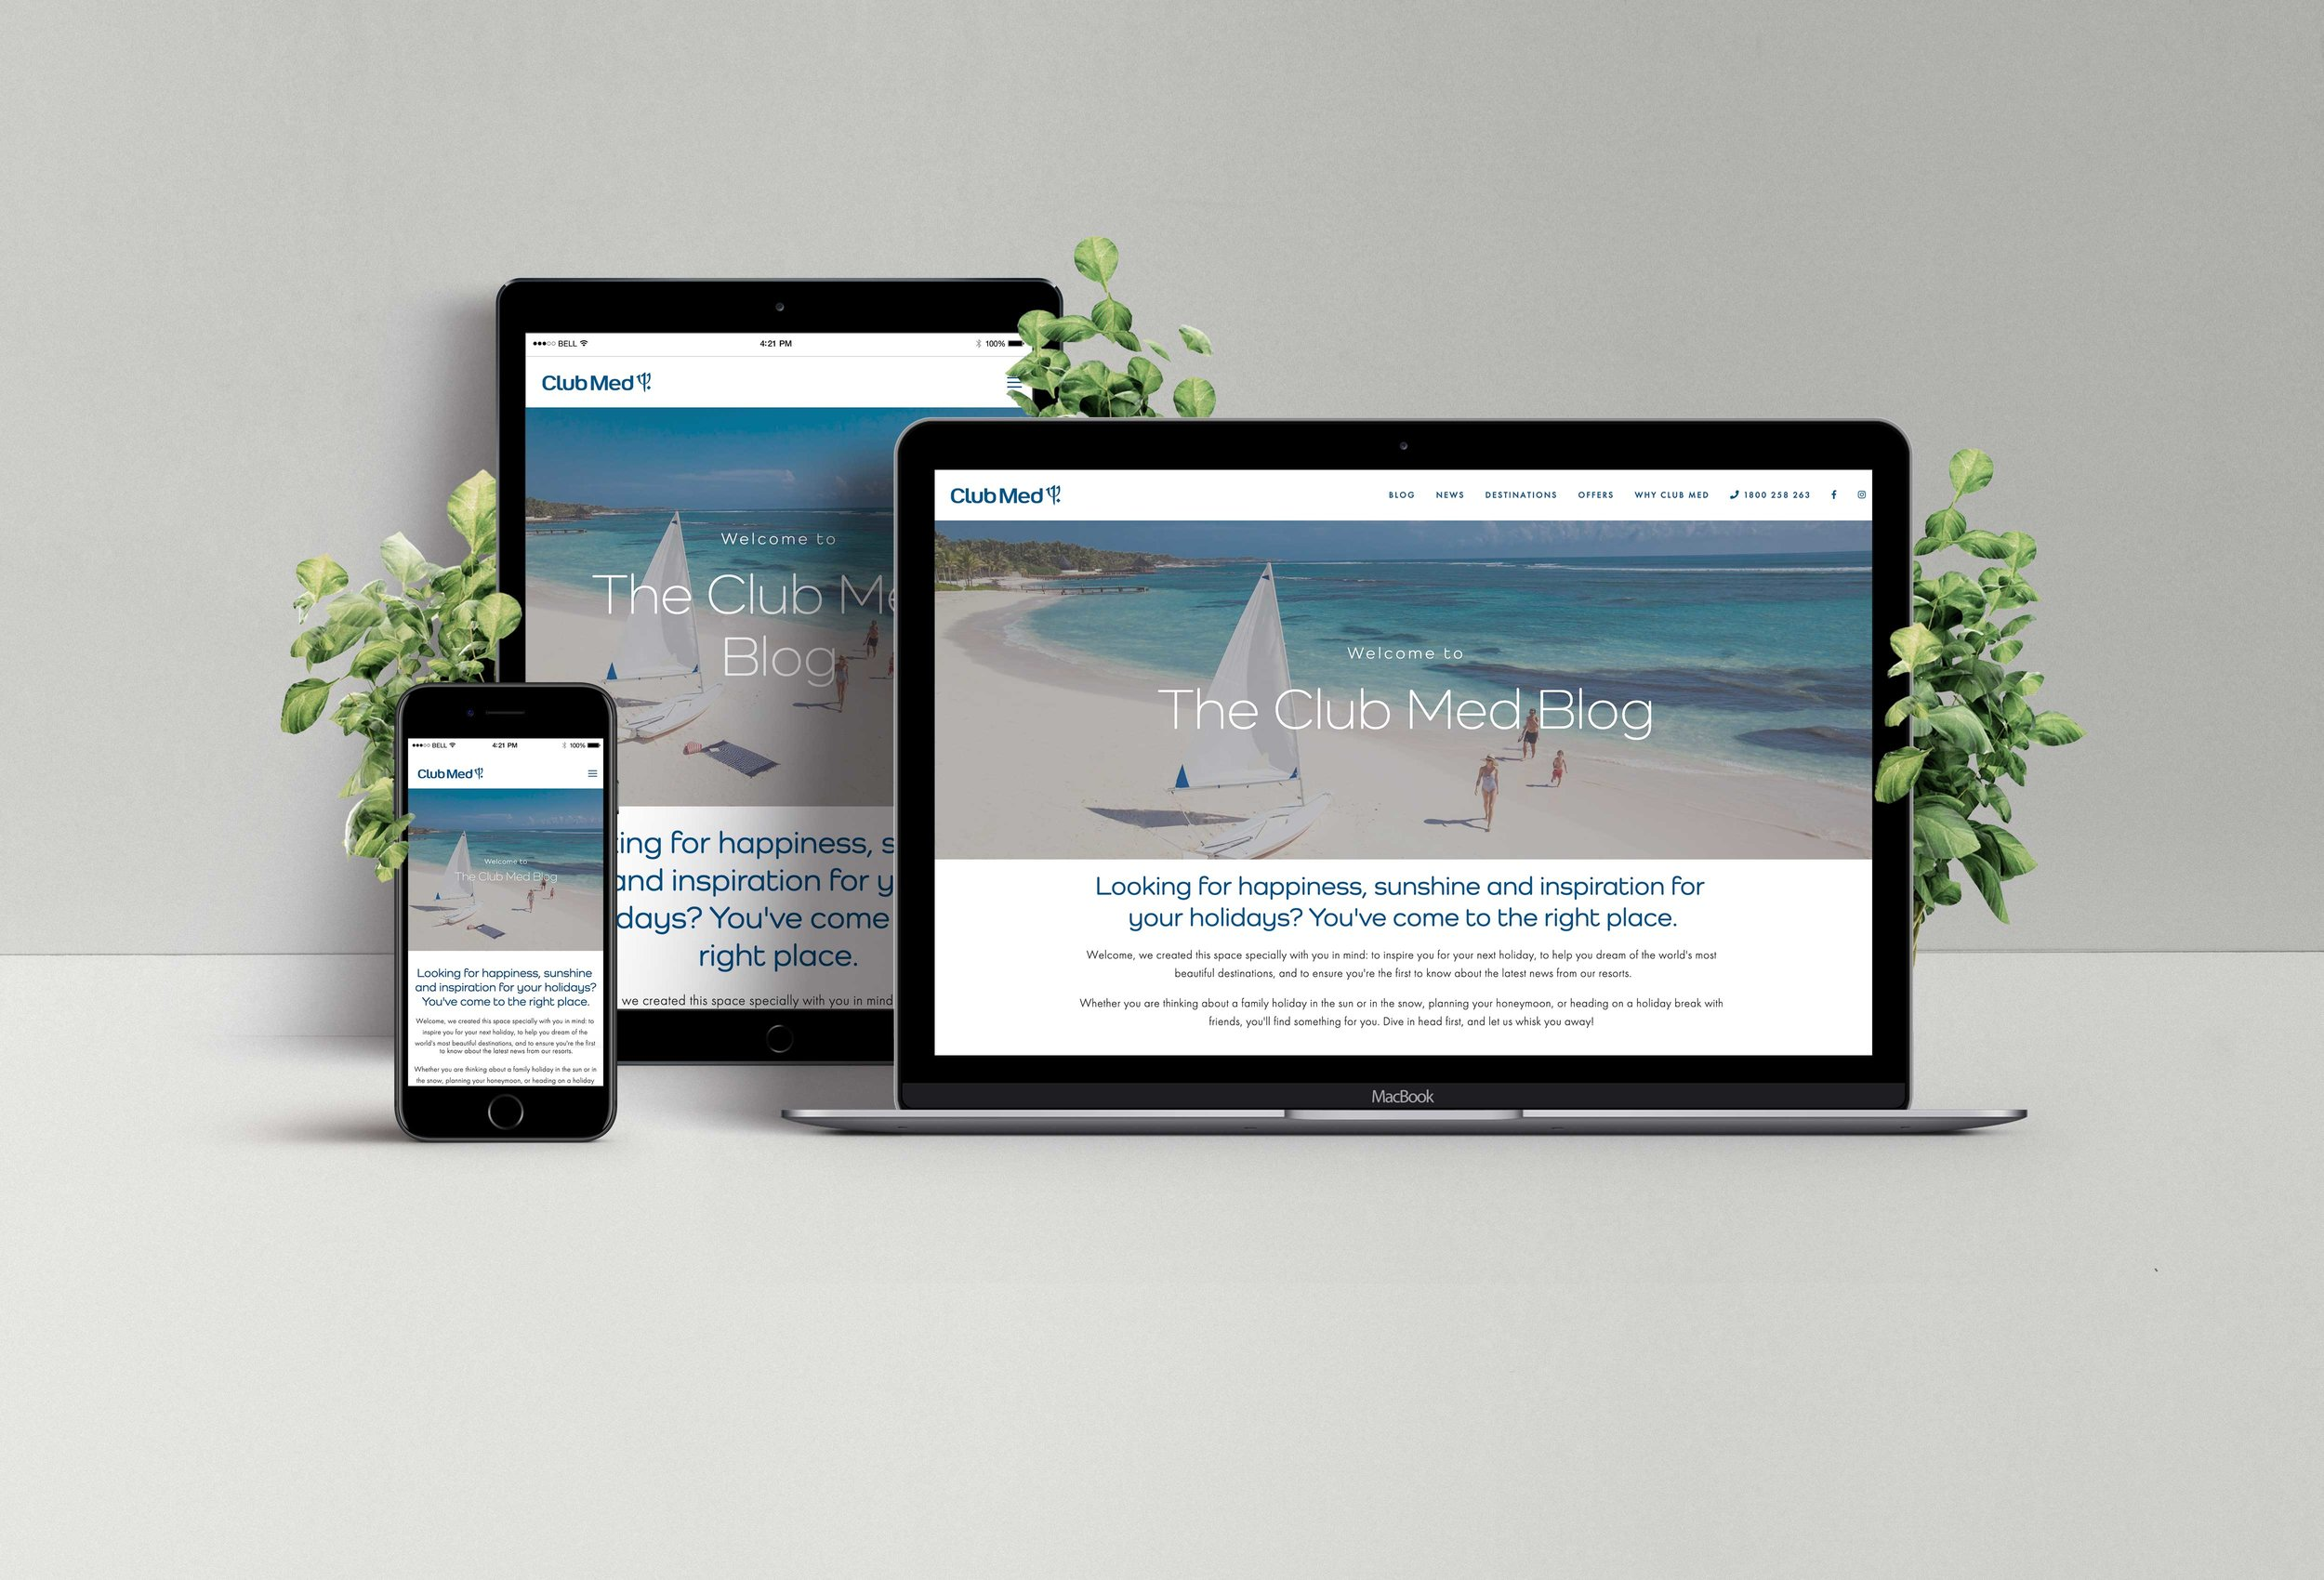 Built this blog through Squarespace after transitioning from Wordpress:  https://blog.clubmed.com.au